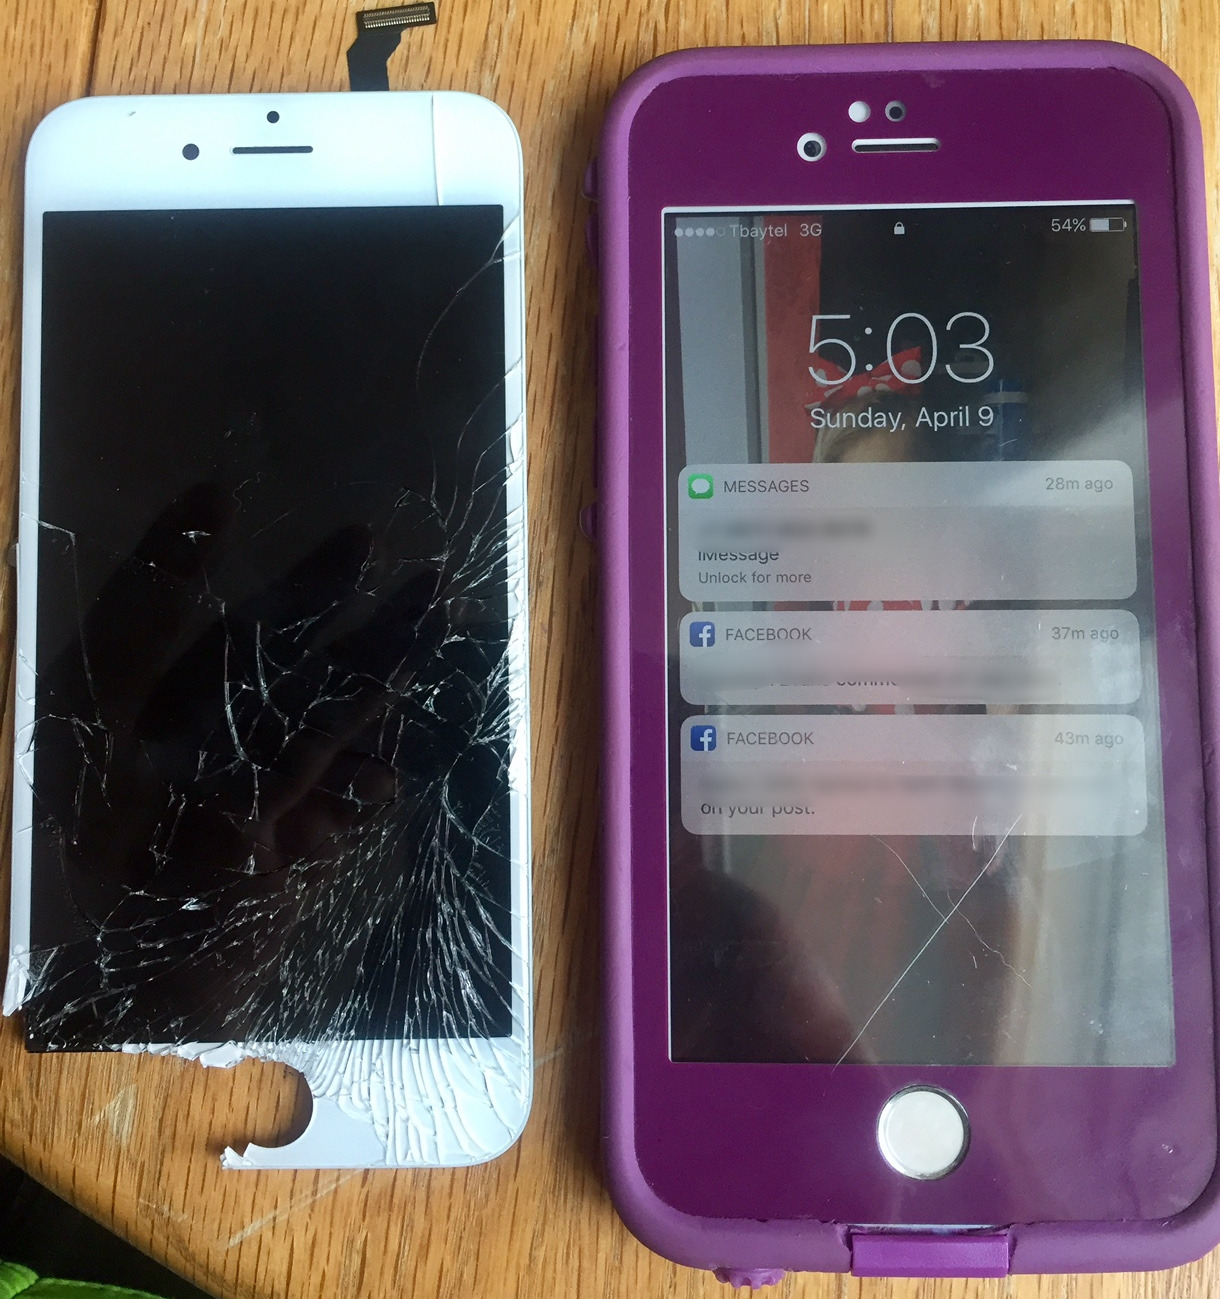 IPhone 6 screen change